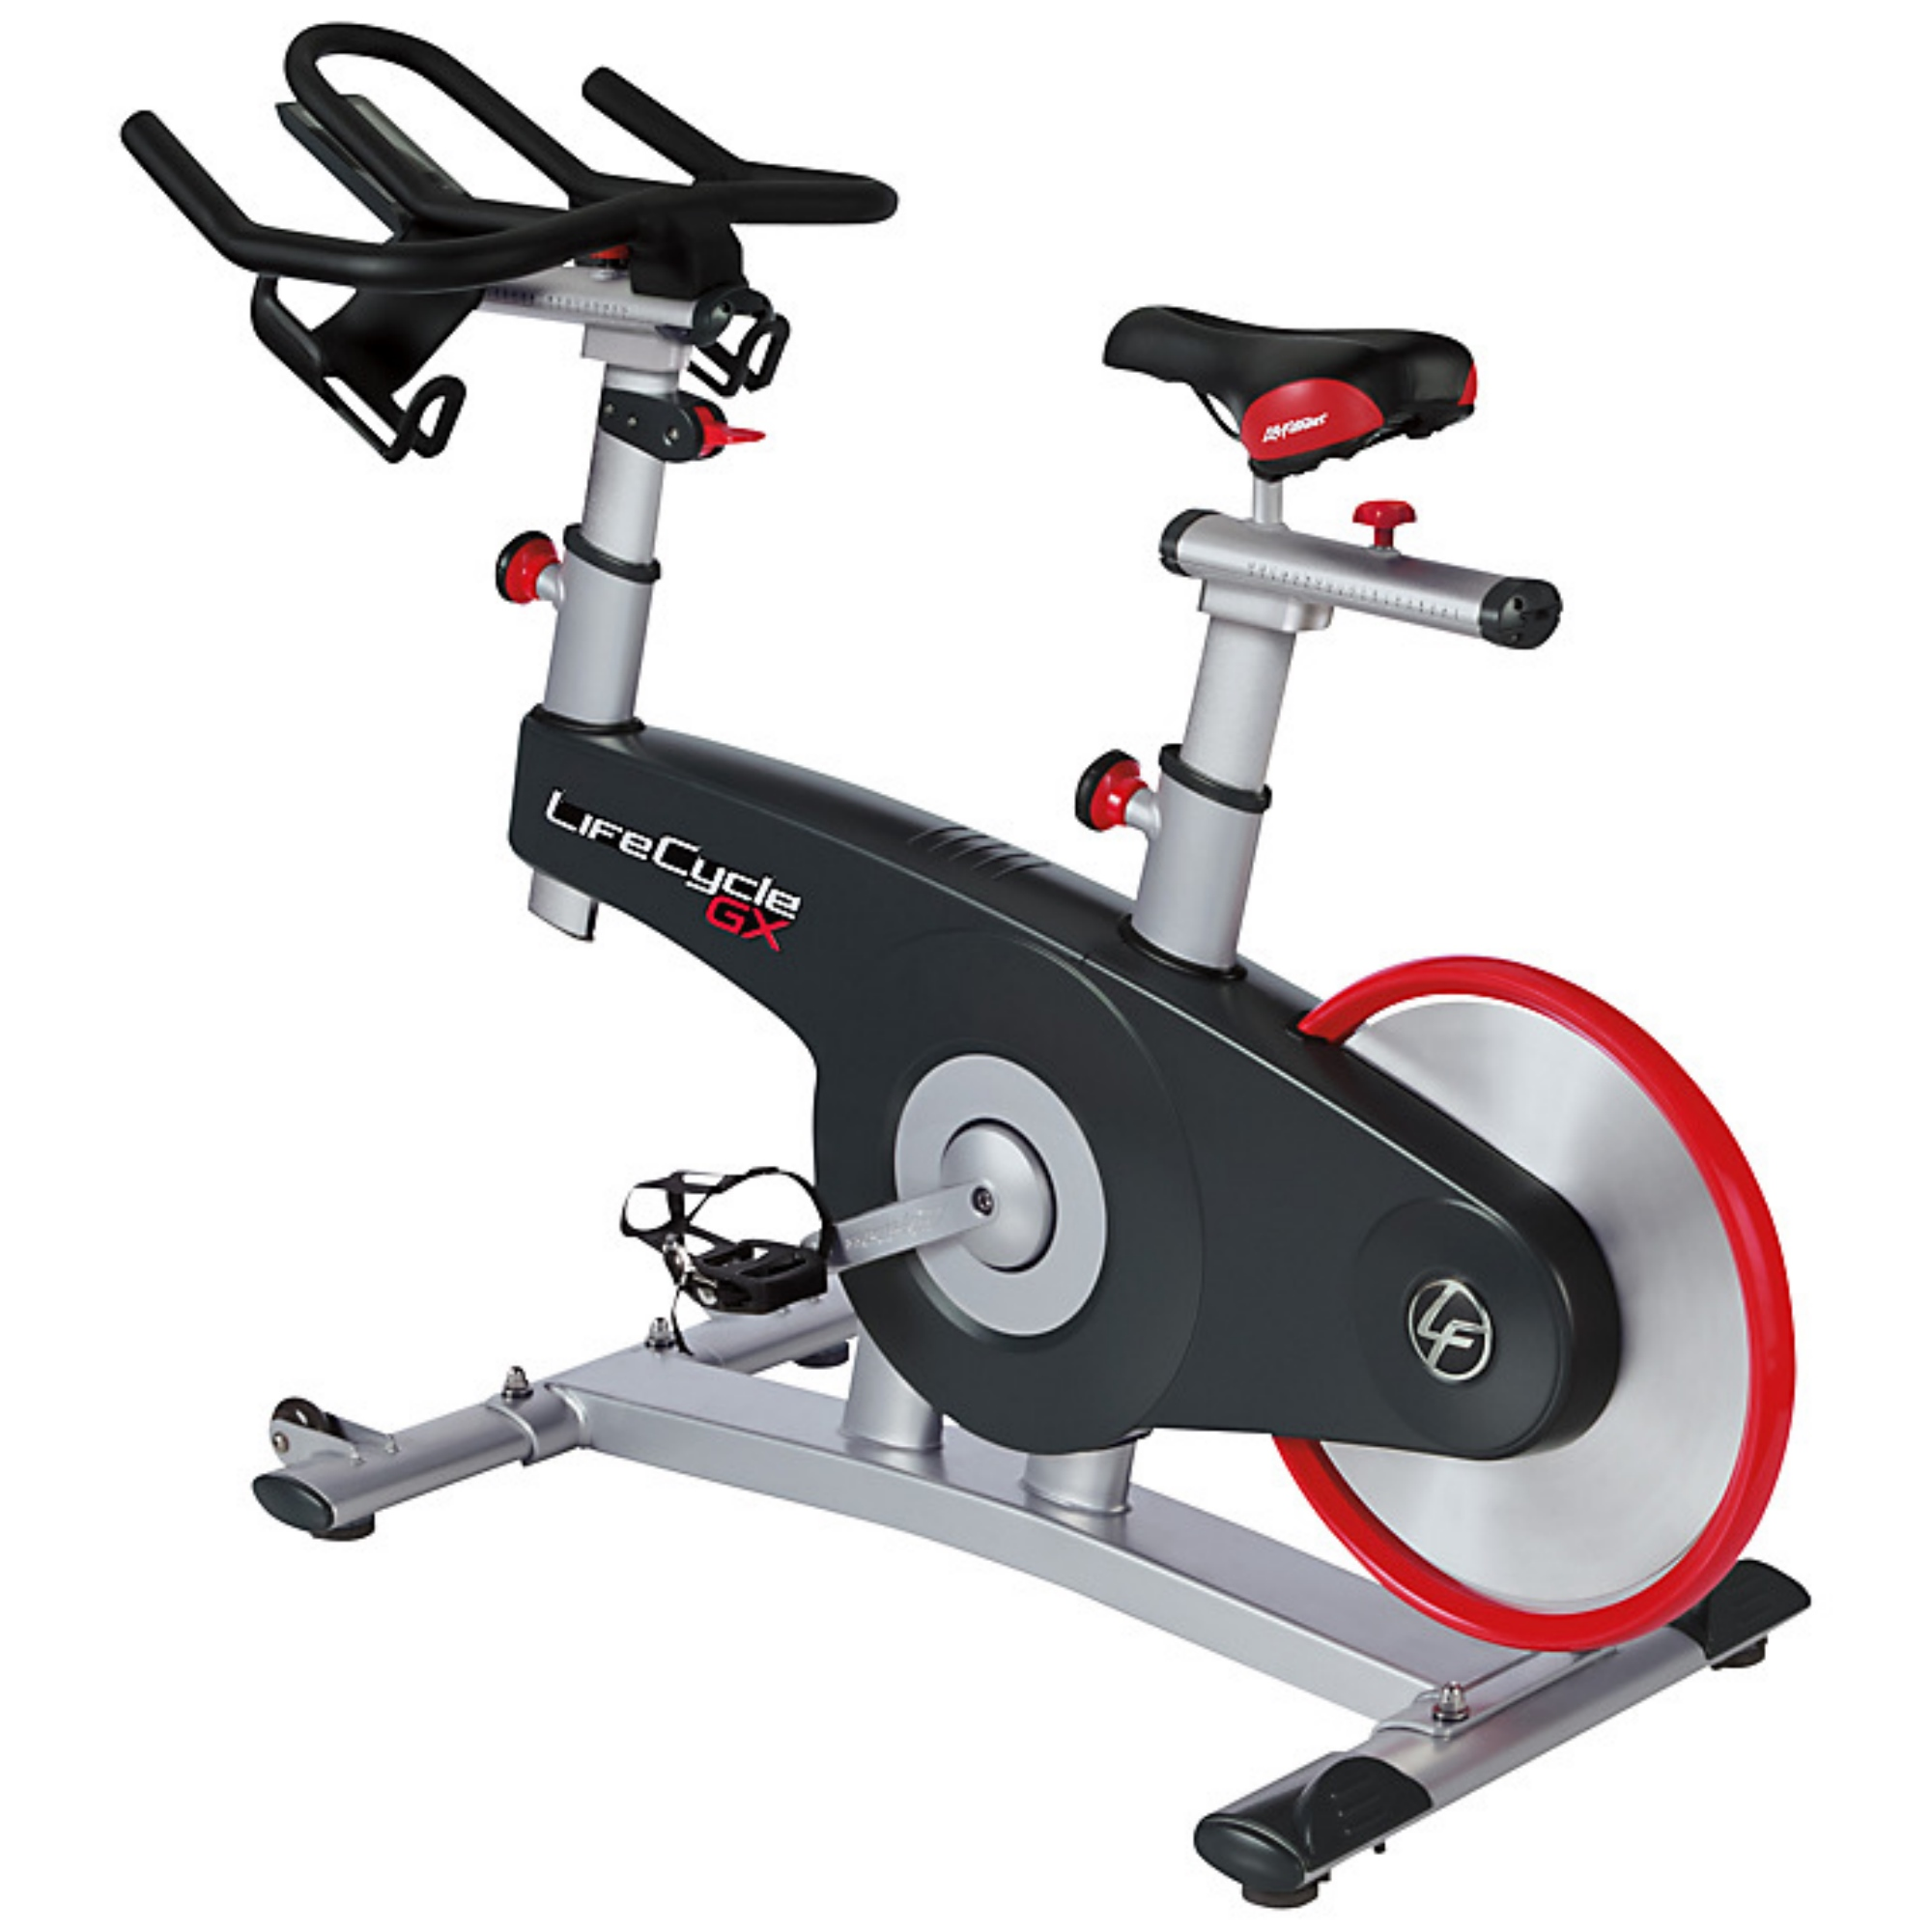 Life Fitness LifeCycle GX without Console